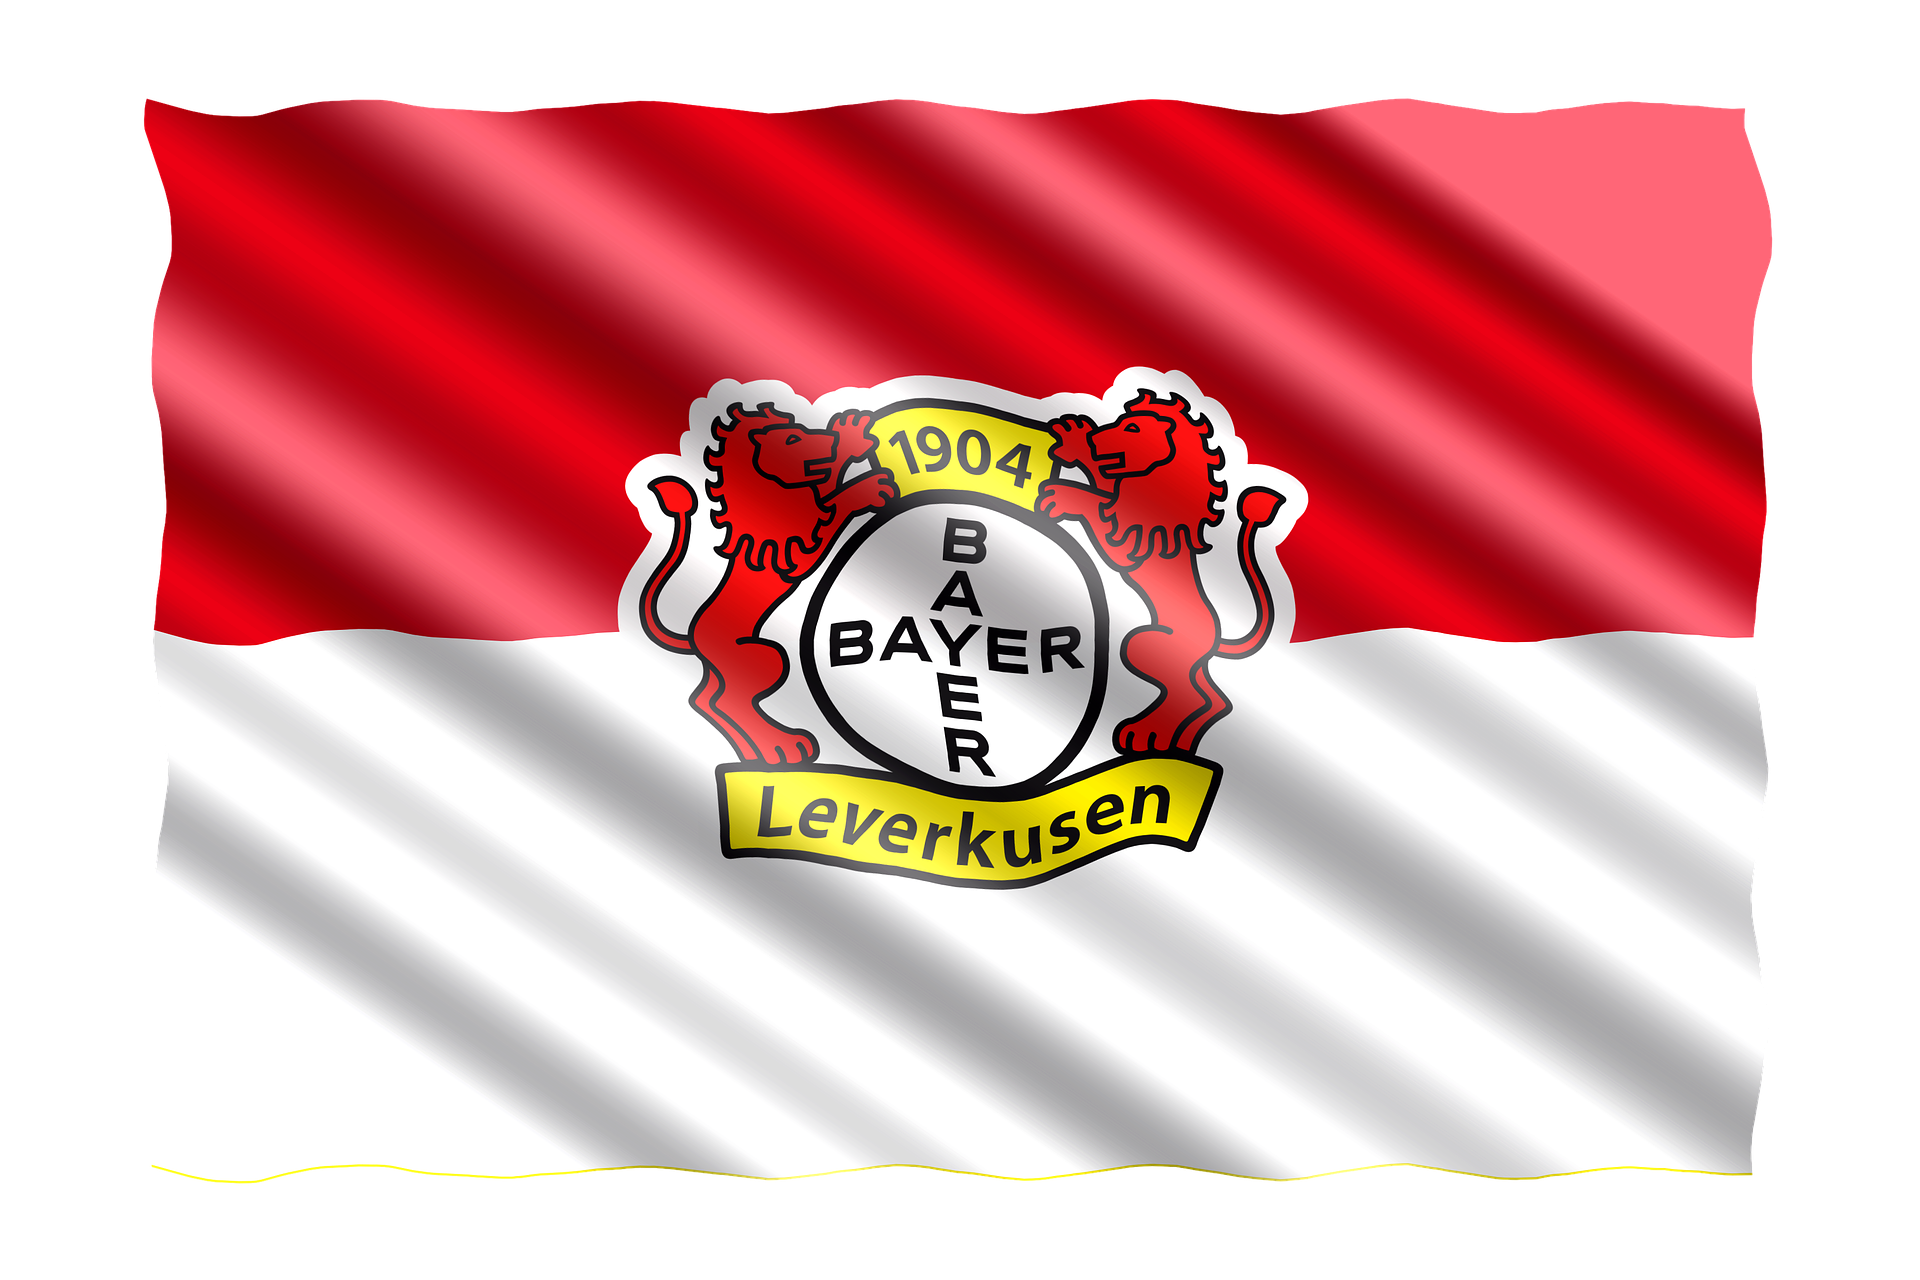 The Flag of Bayer Leverkusen with a logo